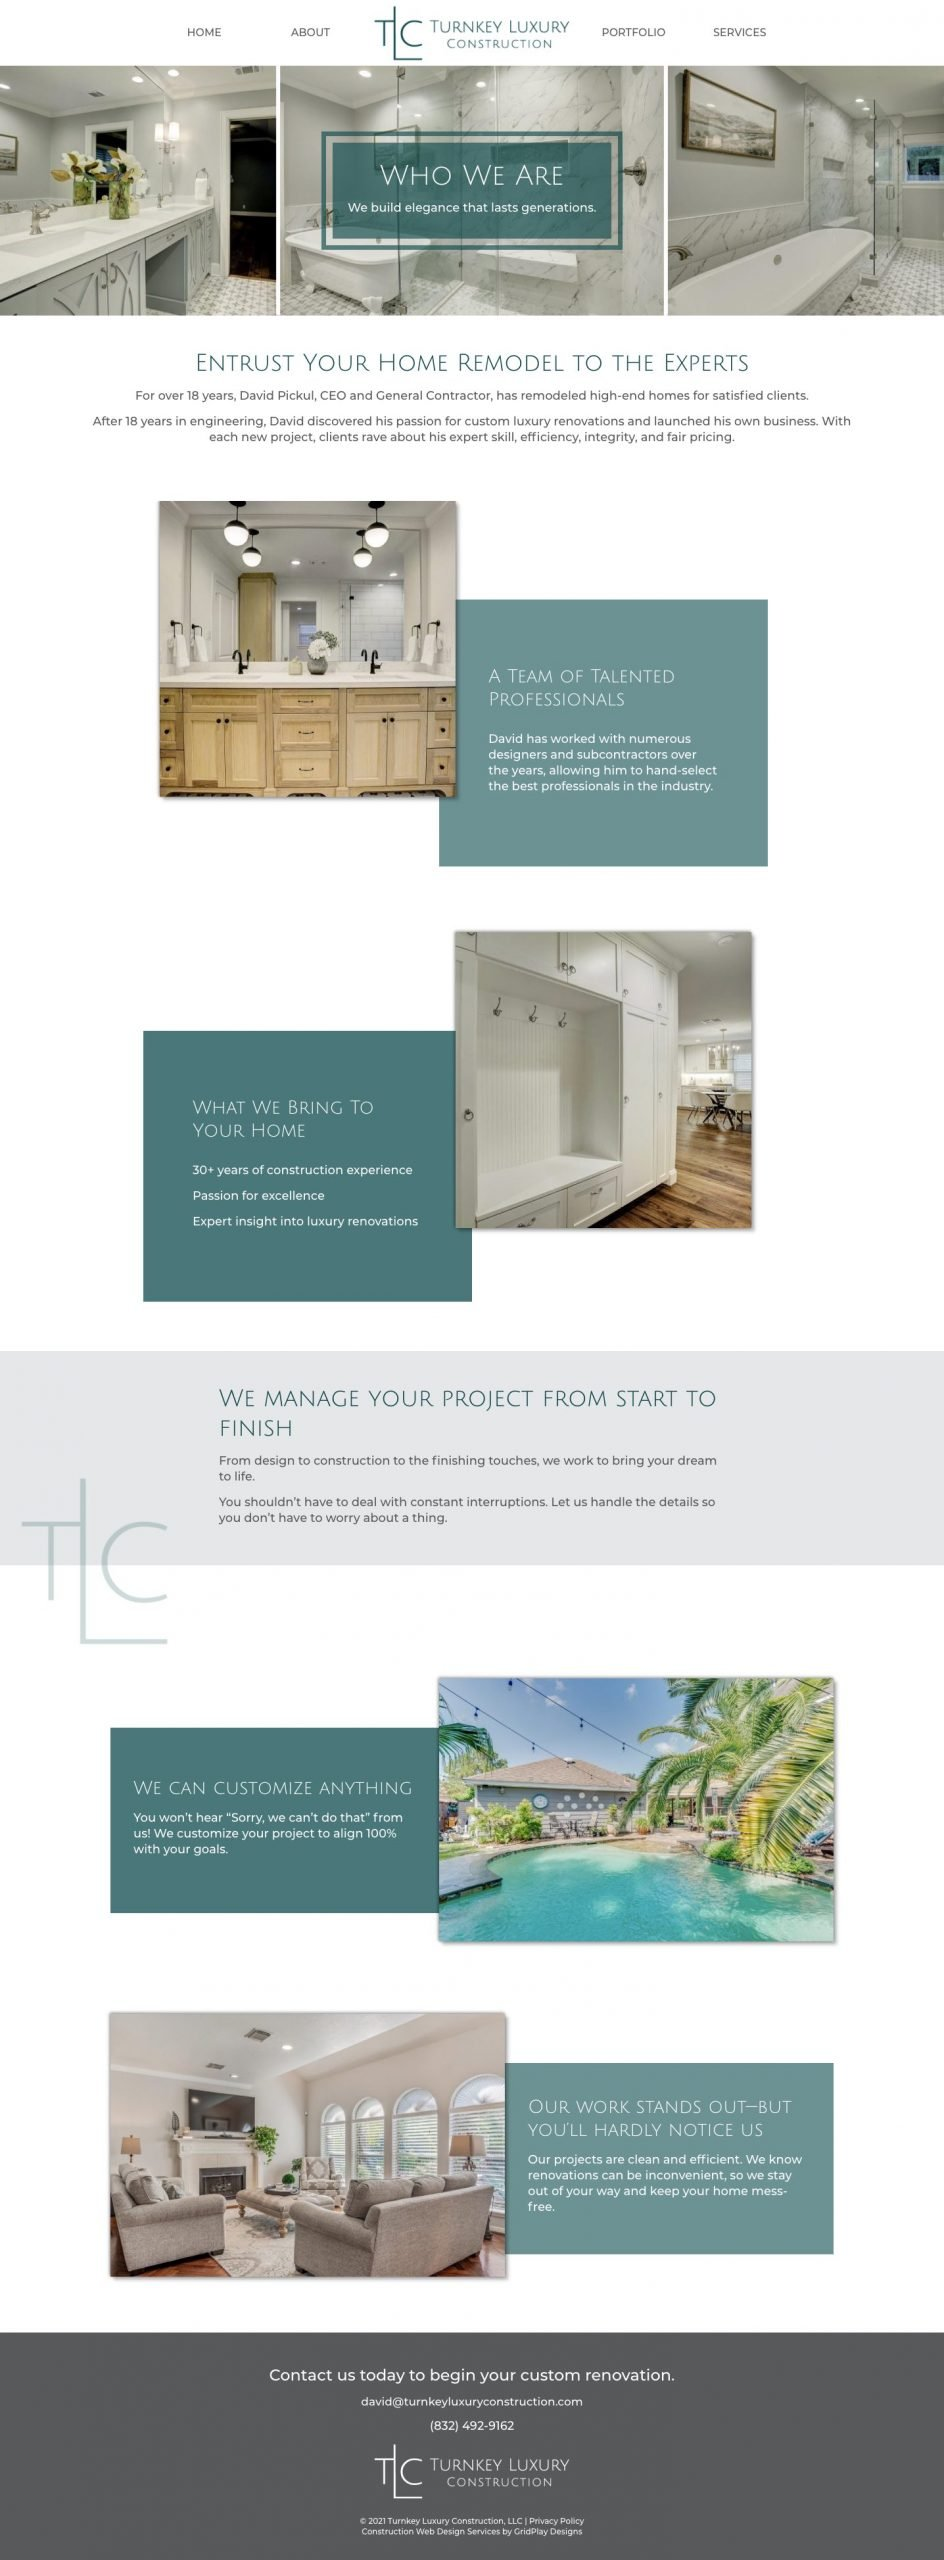 Turnkey Luxury Construction About page